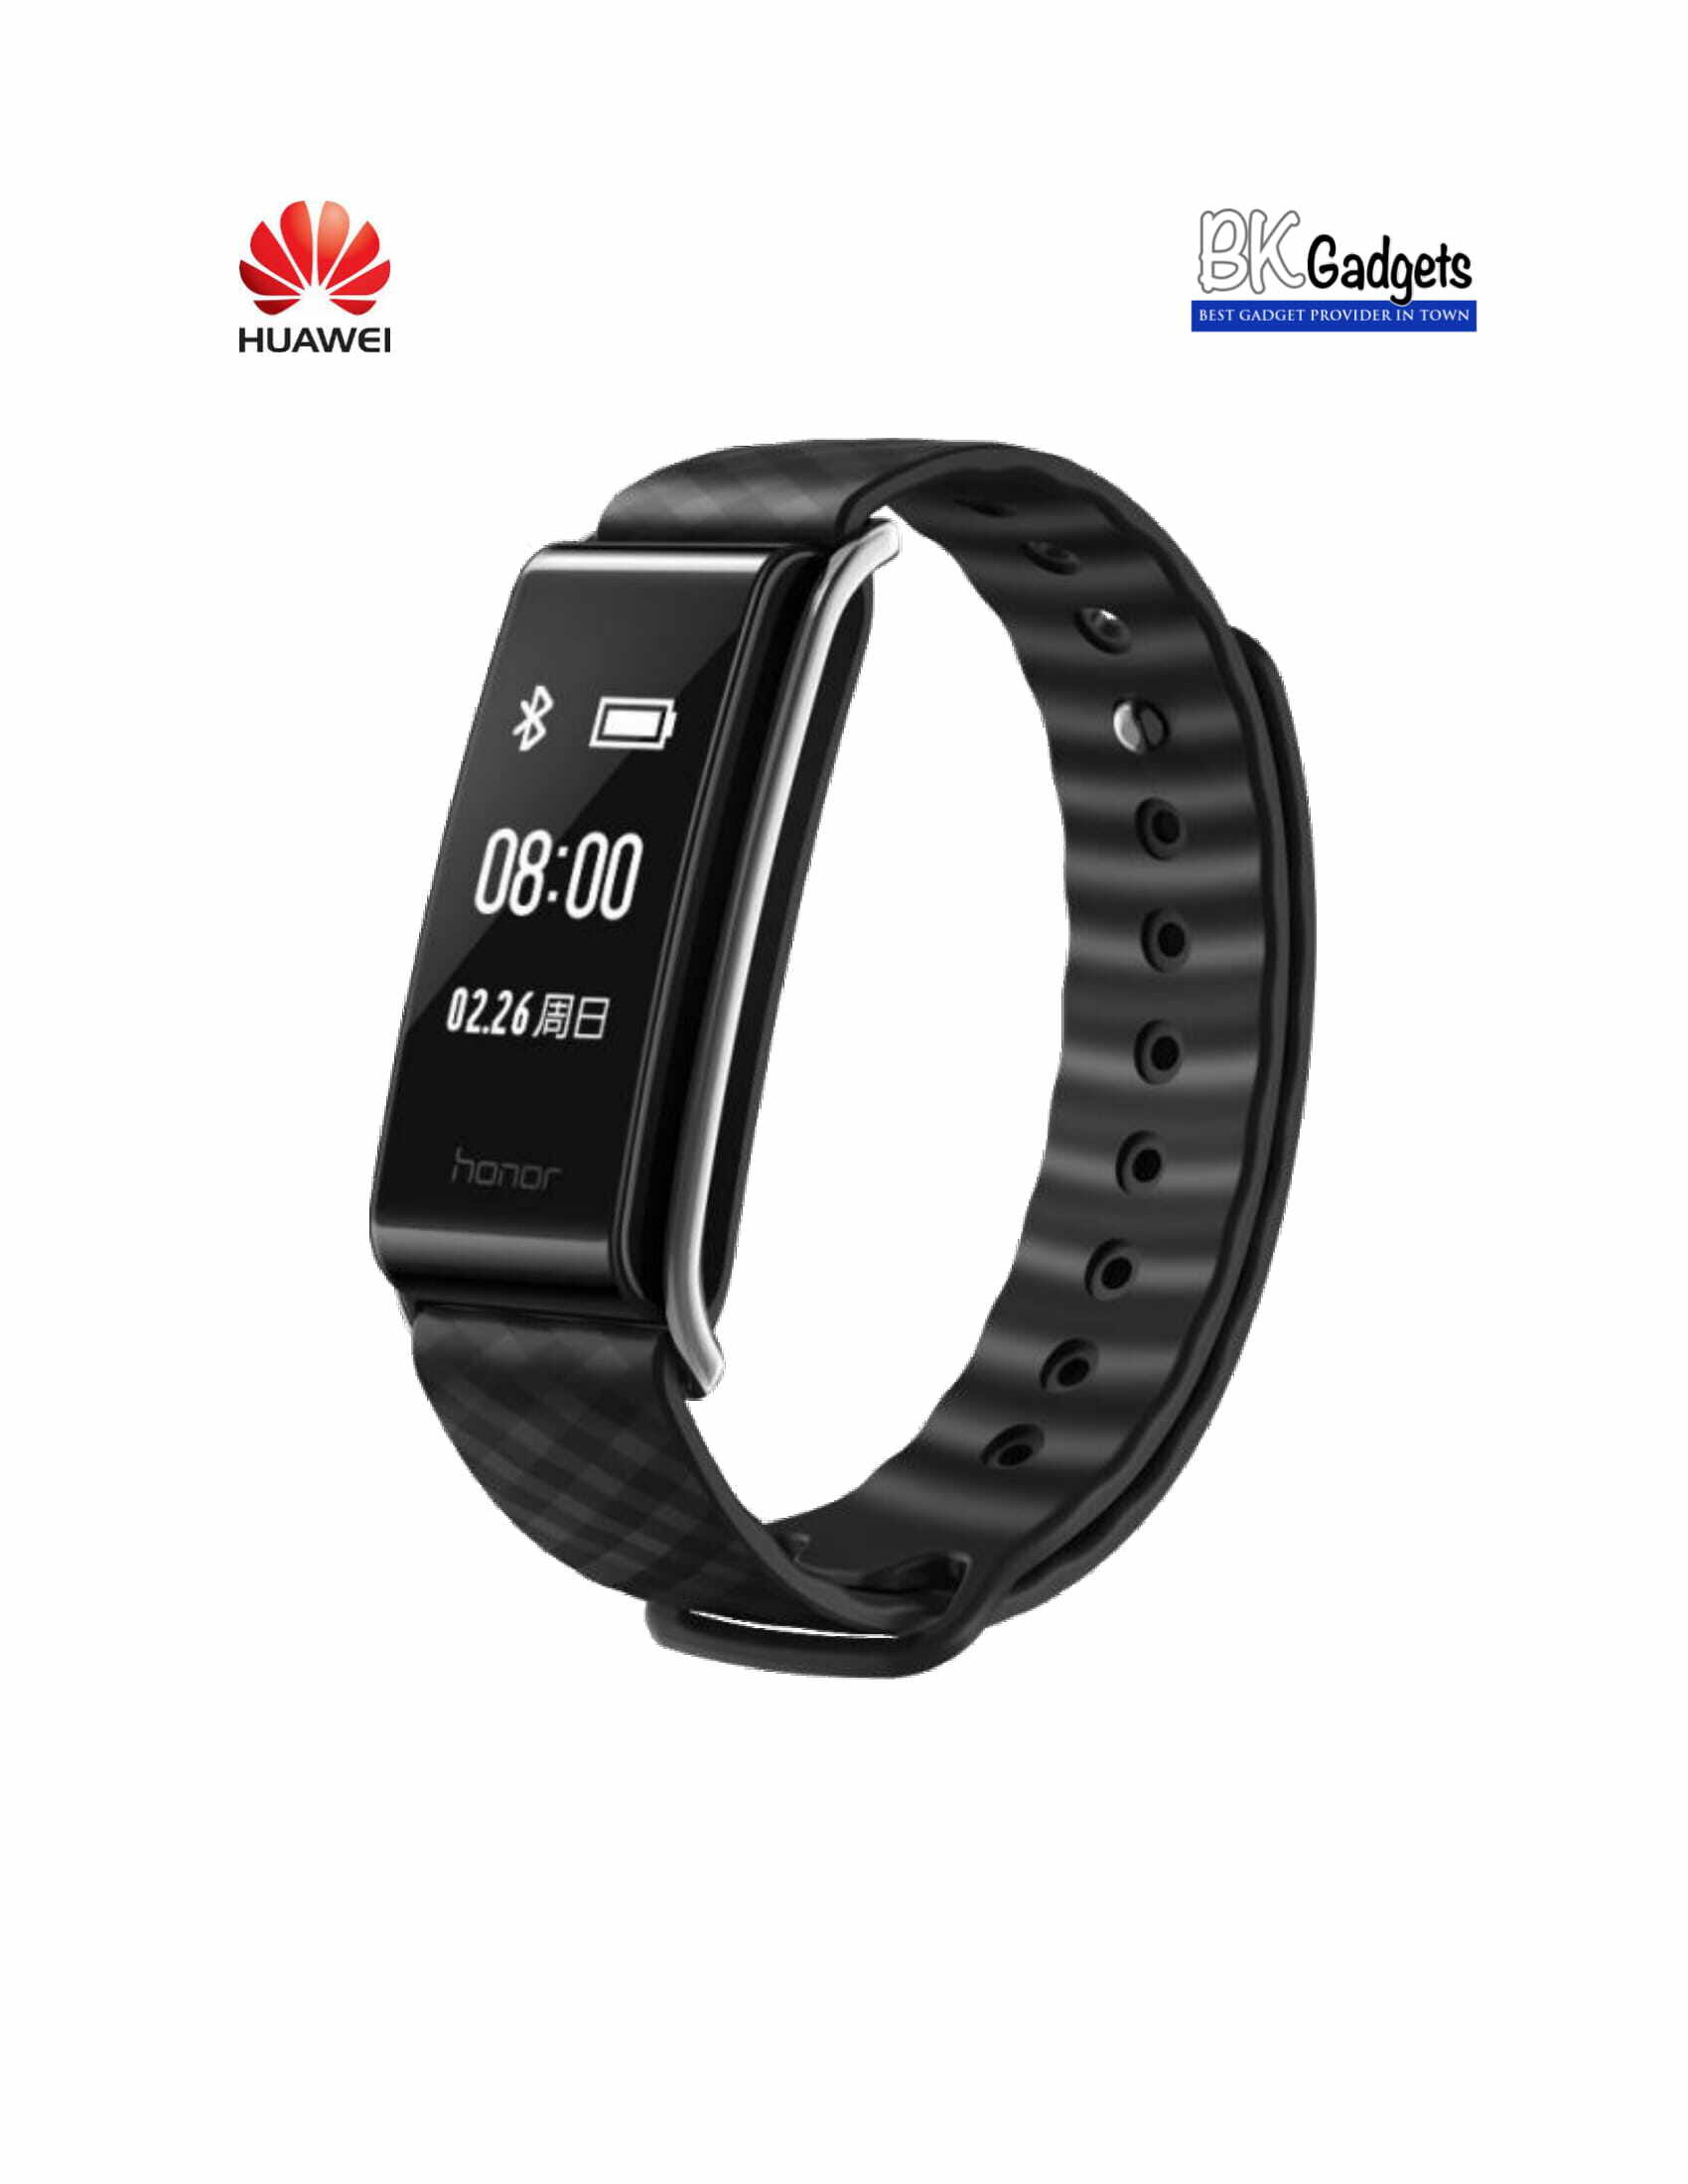 HUAWEI BAND A2 Smart Wristband Wearable Fitness Tracker [ Black ]